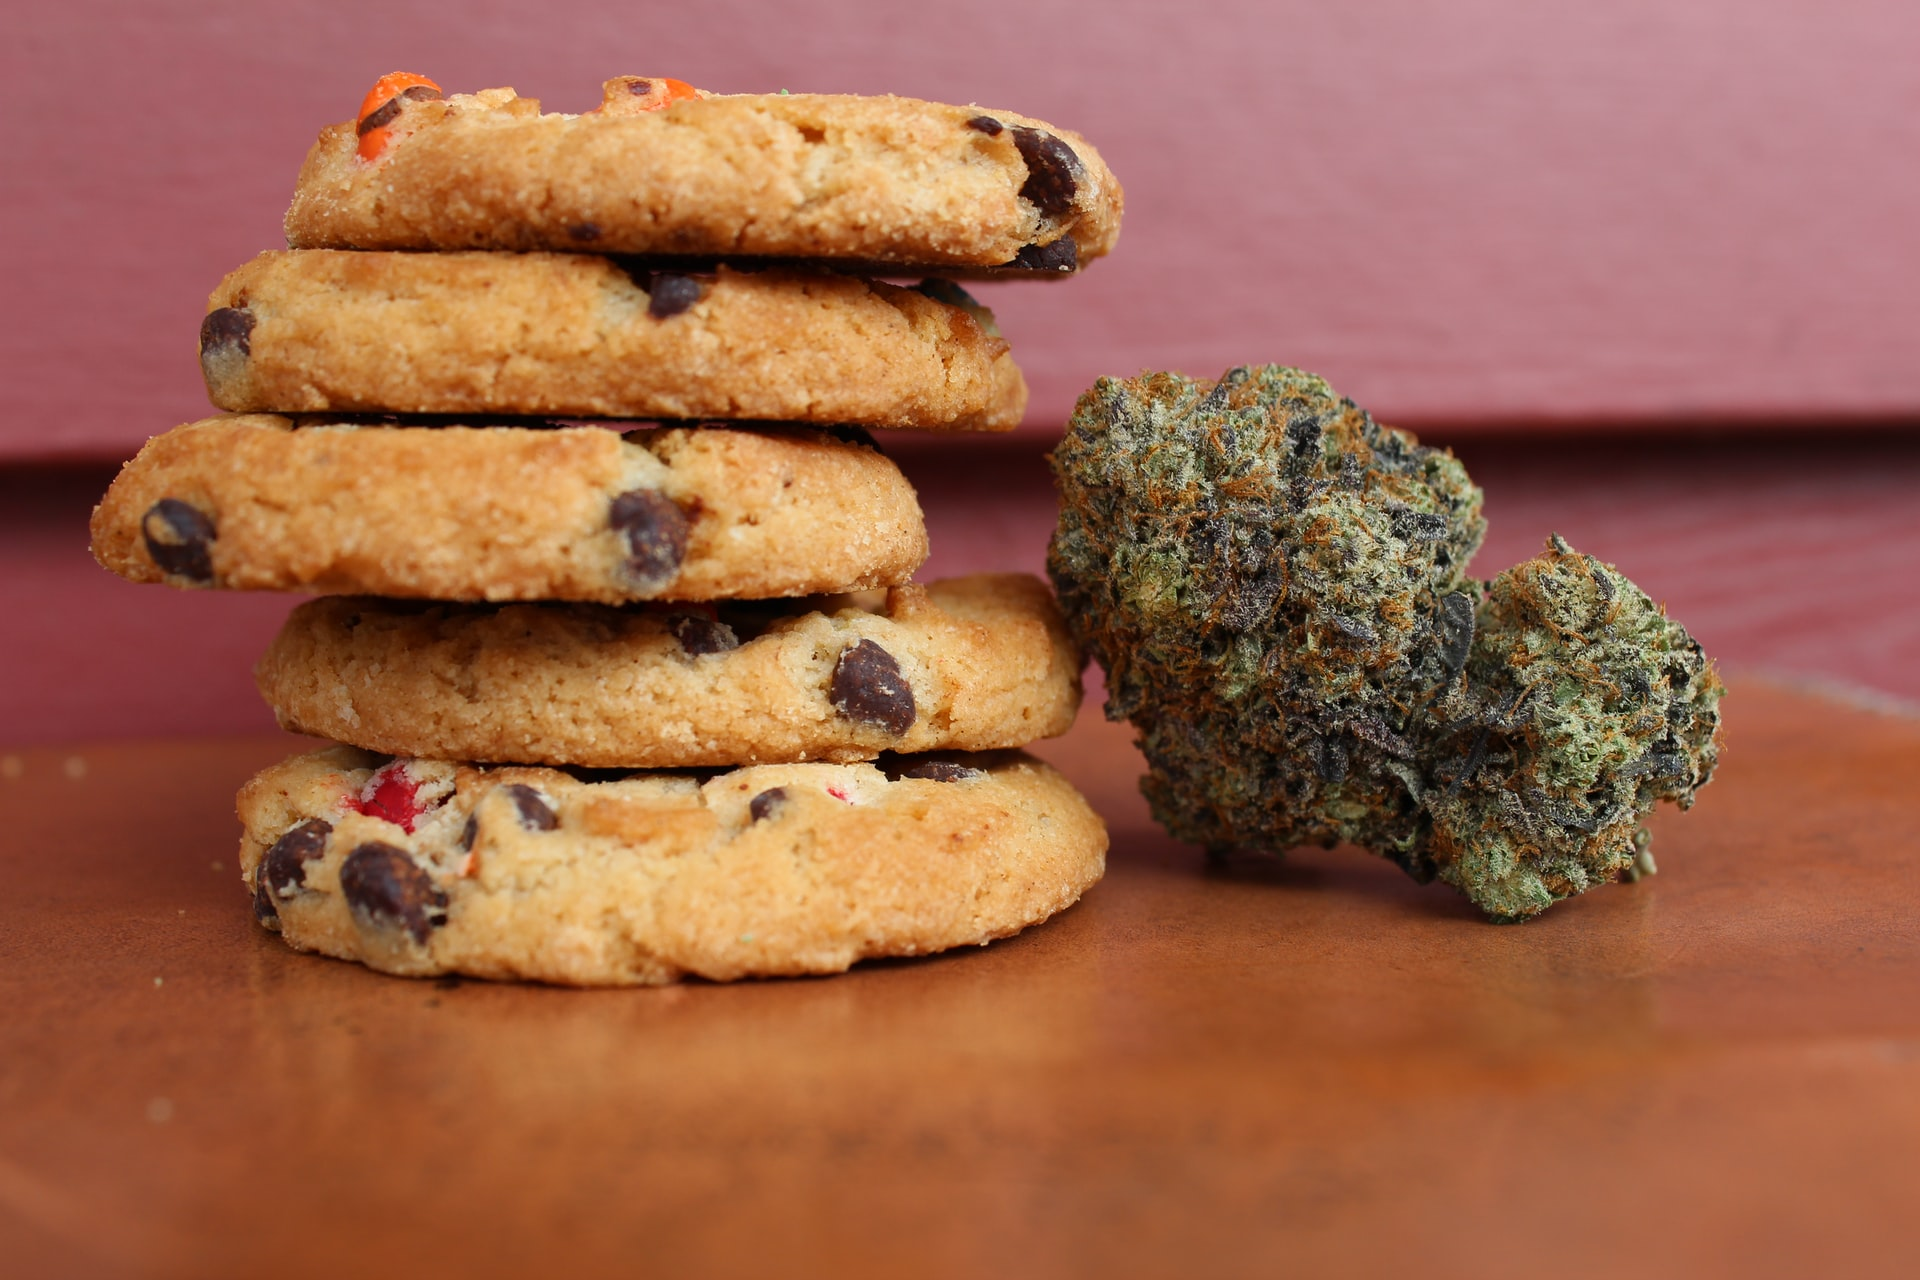 How Long Does Edible Marijuana Stay In Your System?